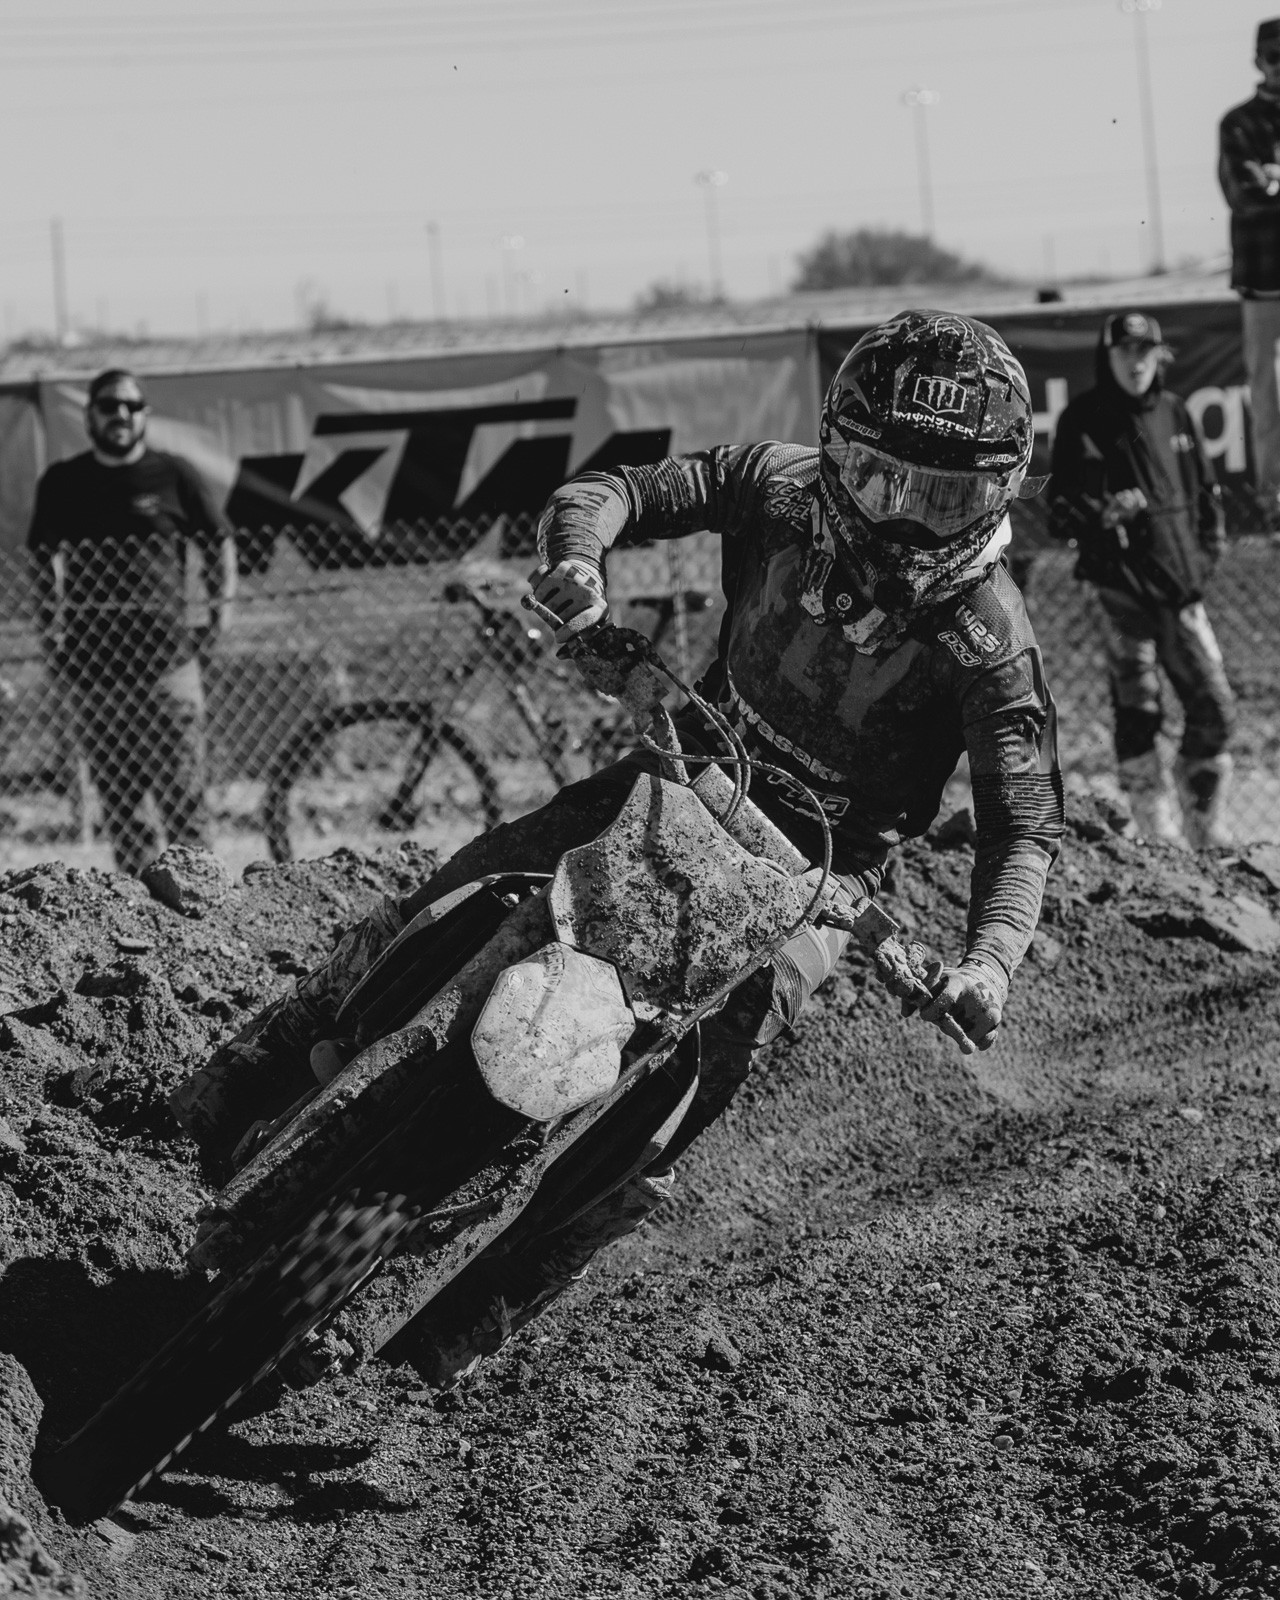 AZ Open Thursday - GuyB - Motocross Pictures - Vital MX